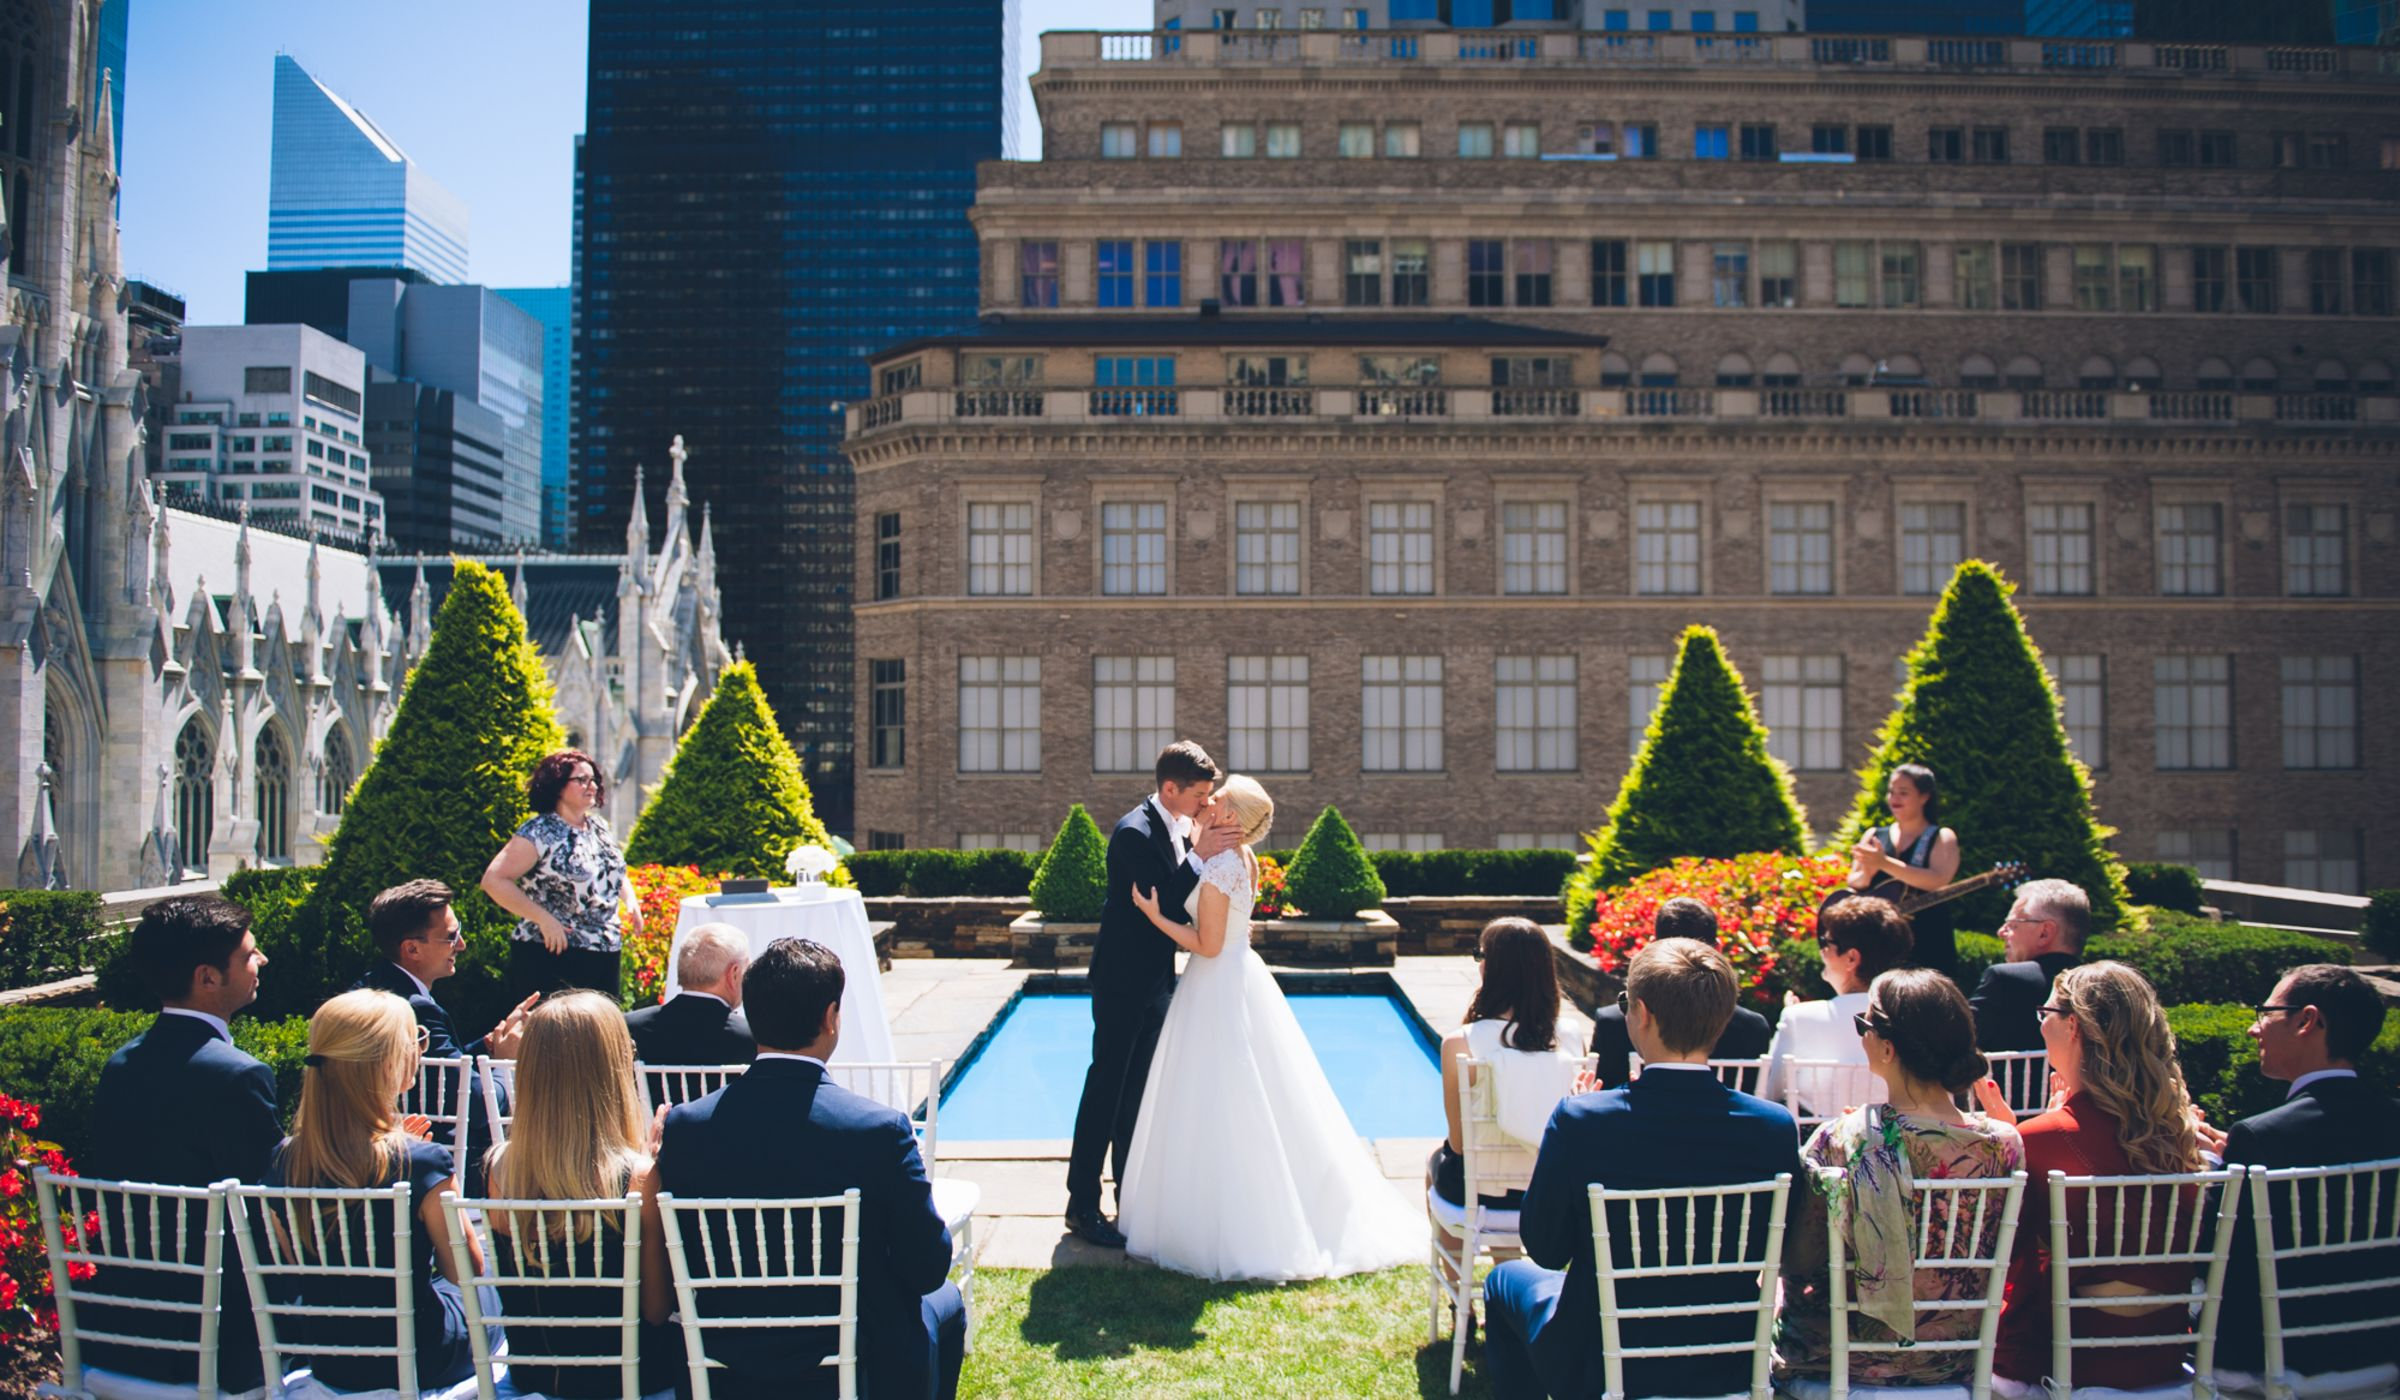 10 outdoor wedding venues in new york city weddingwire for Outdoor wedding new york